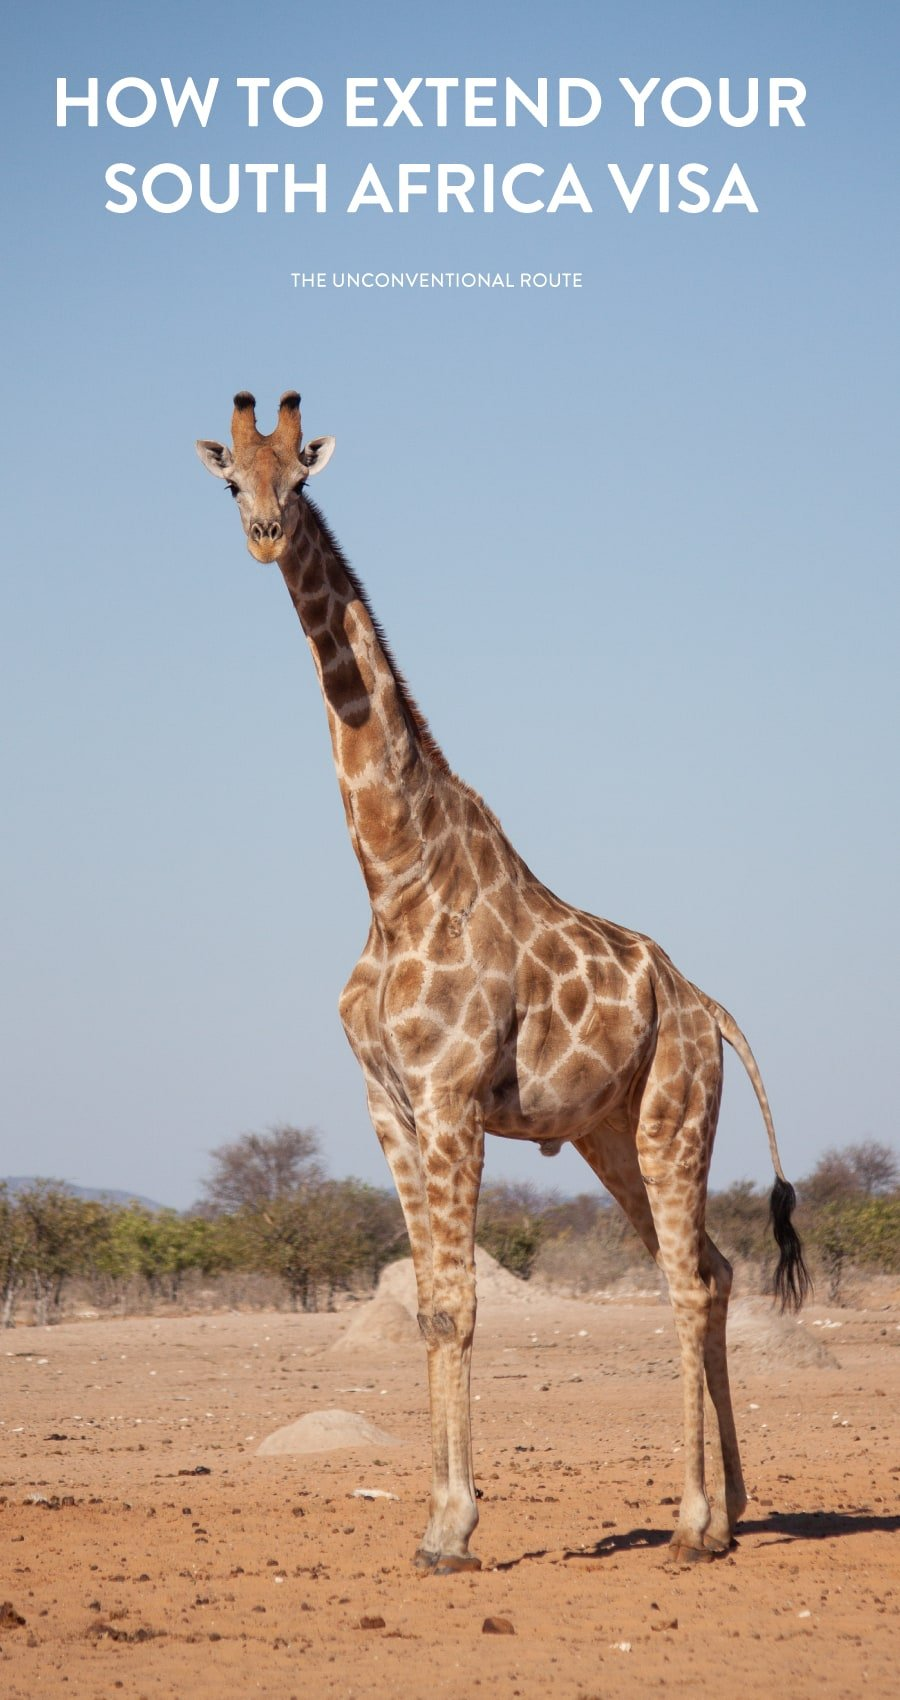 Giraffe on a safari in Etosha, Namibia